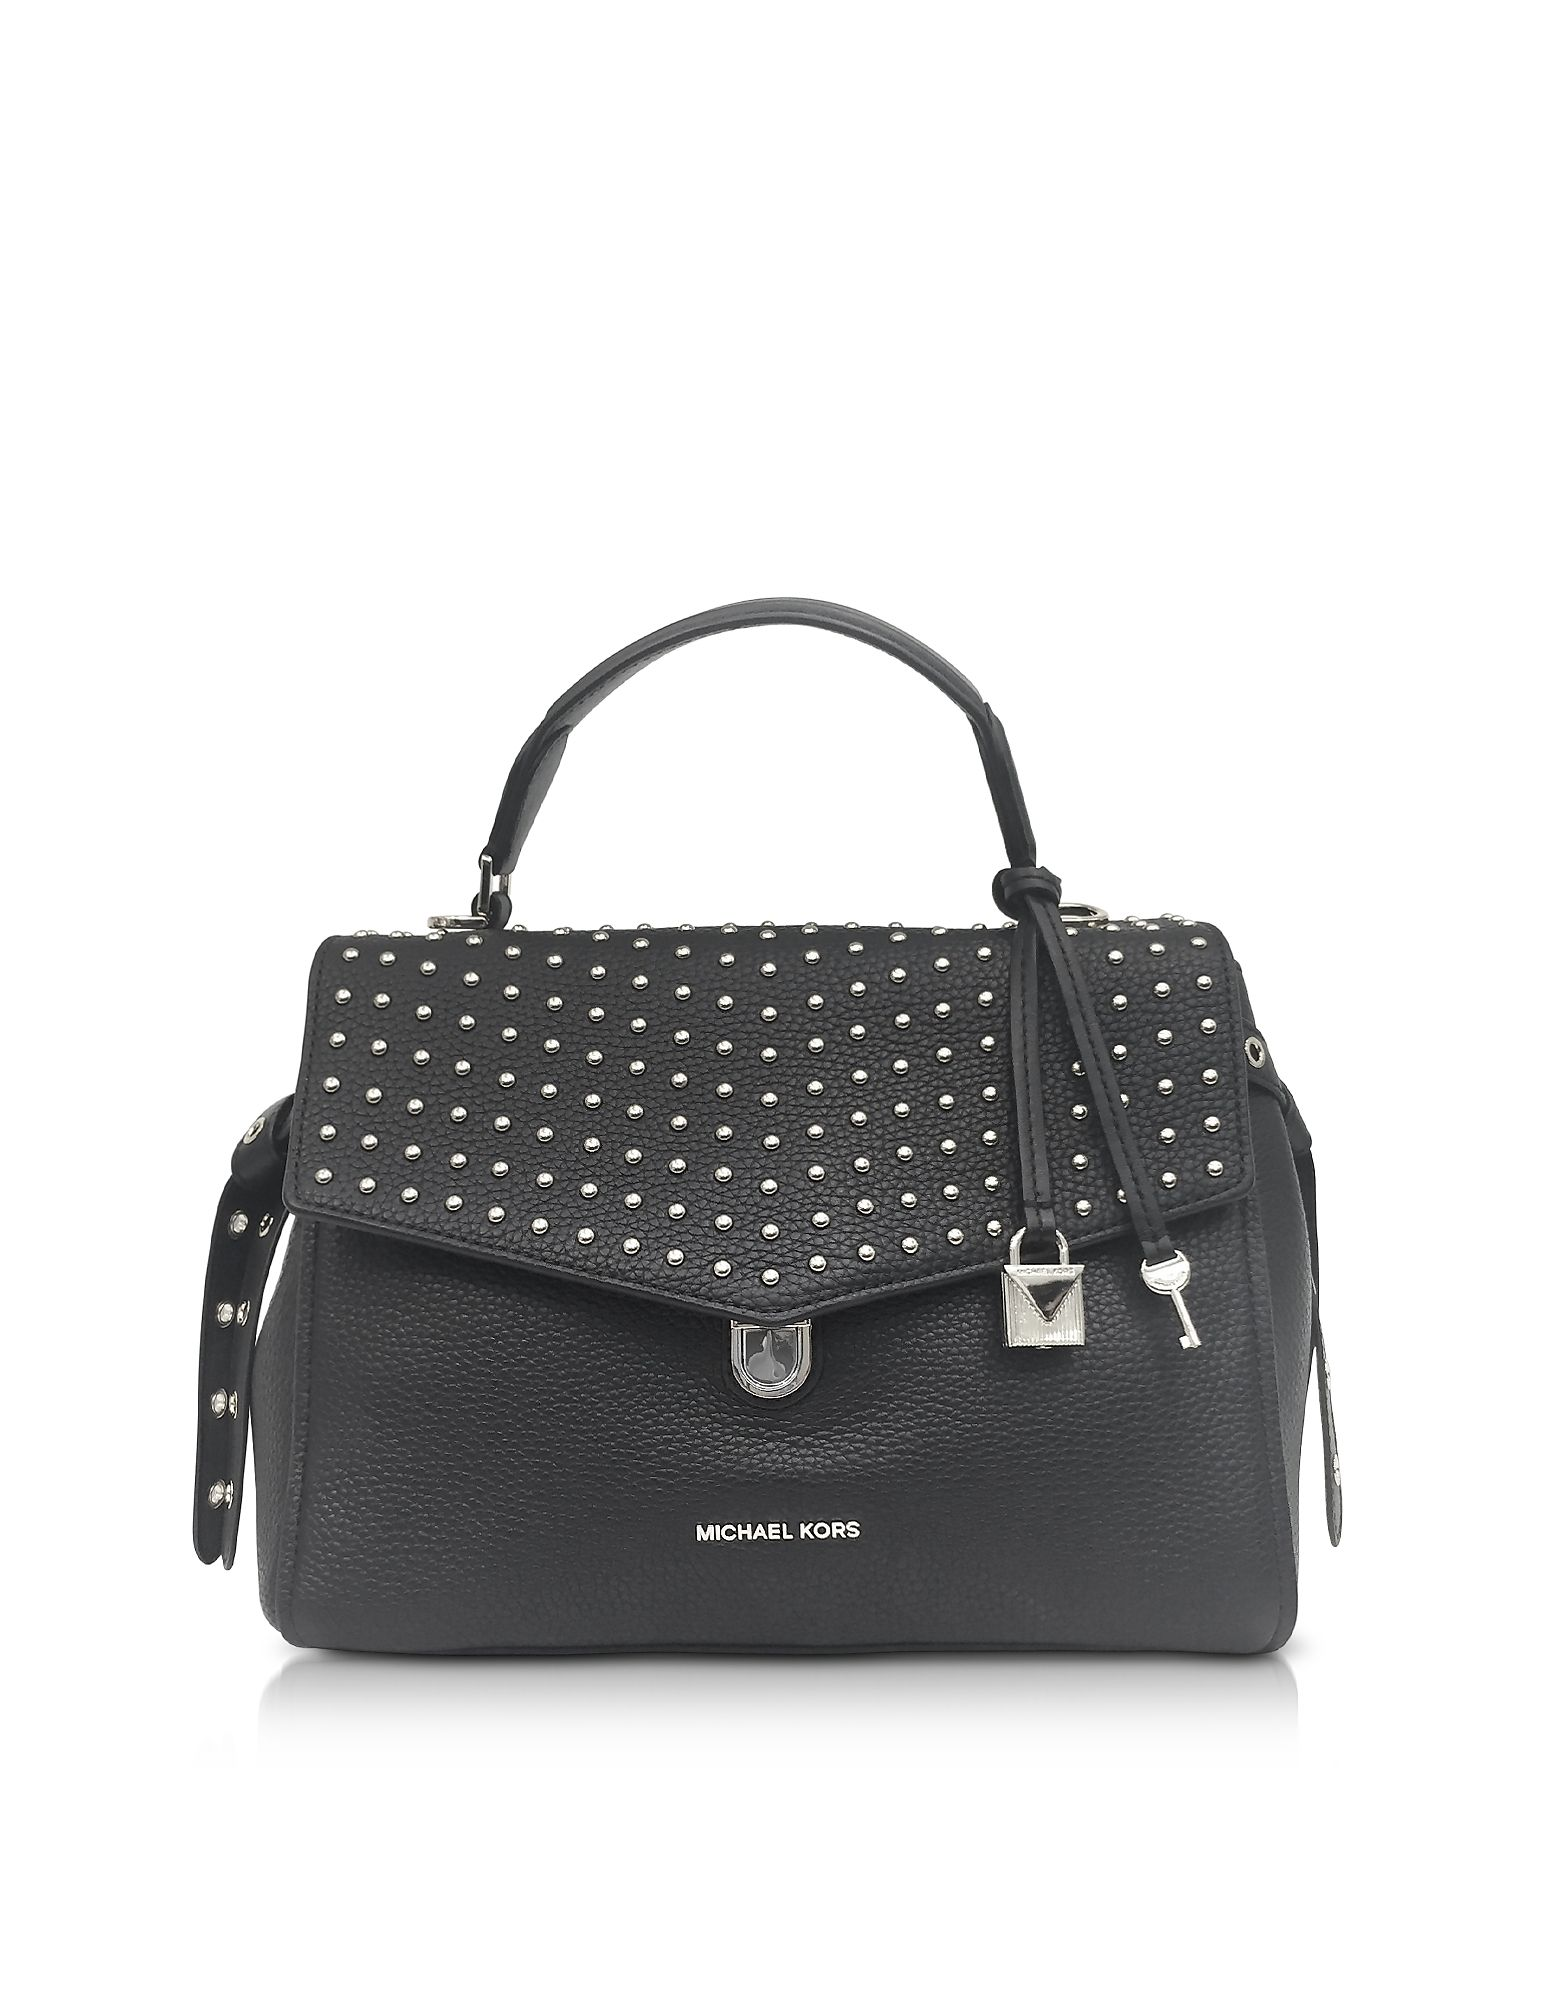 87d5d77906de MICHAEL KORS BRISTOL BLACK STUDDED LEATHER TOP HANDLE SATCHEL BAG.   michaelkors  bags  leather  hand bags  satchel